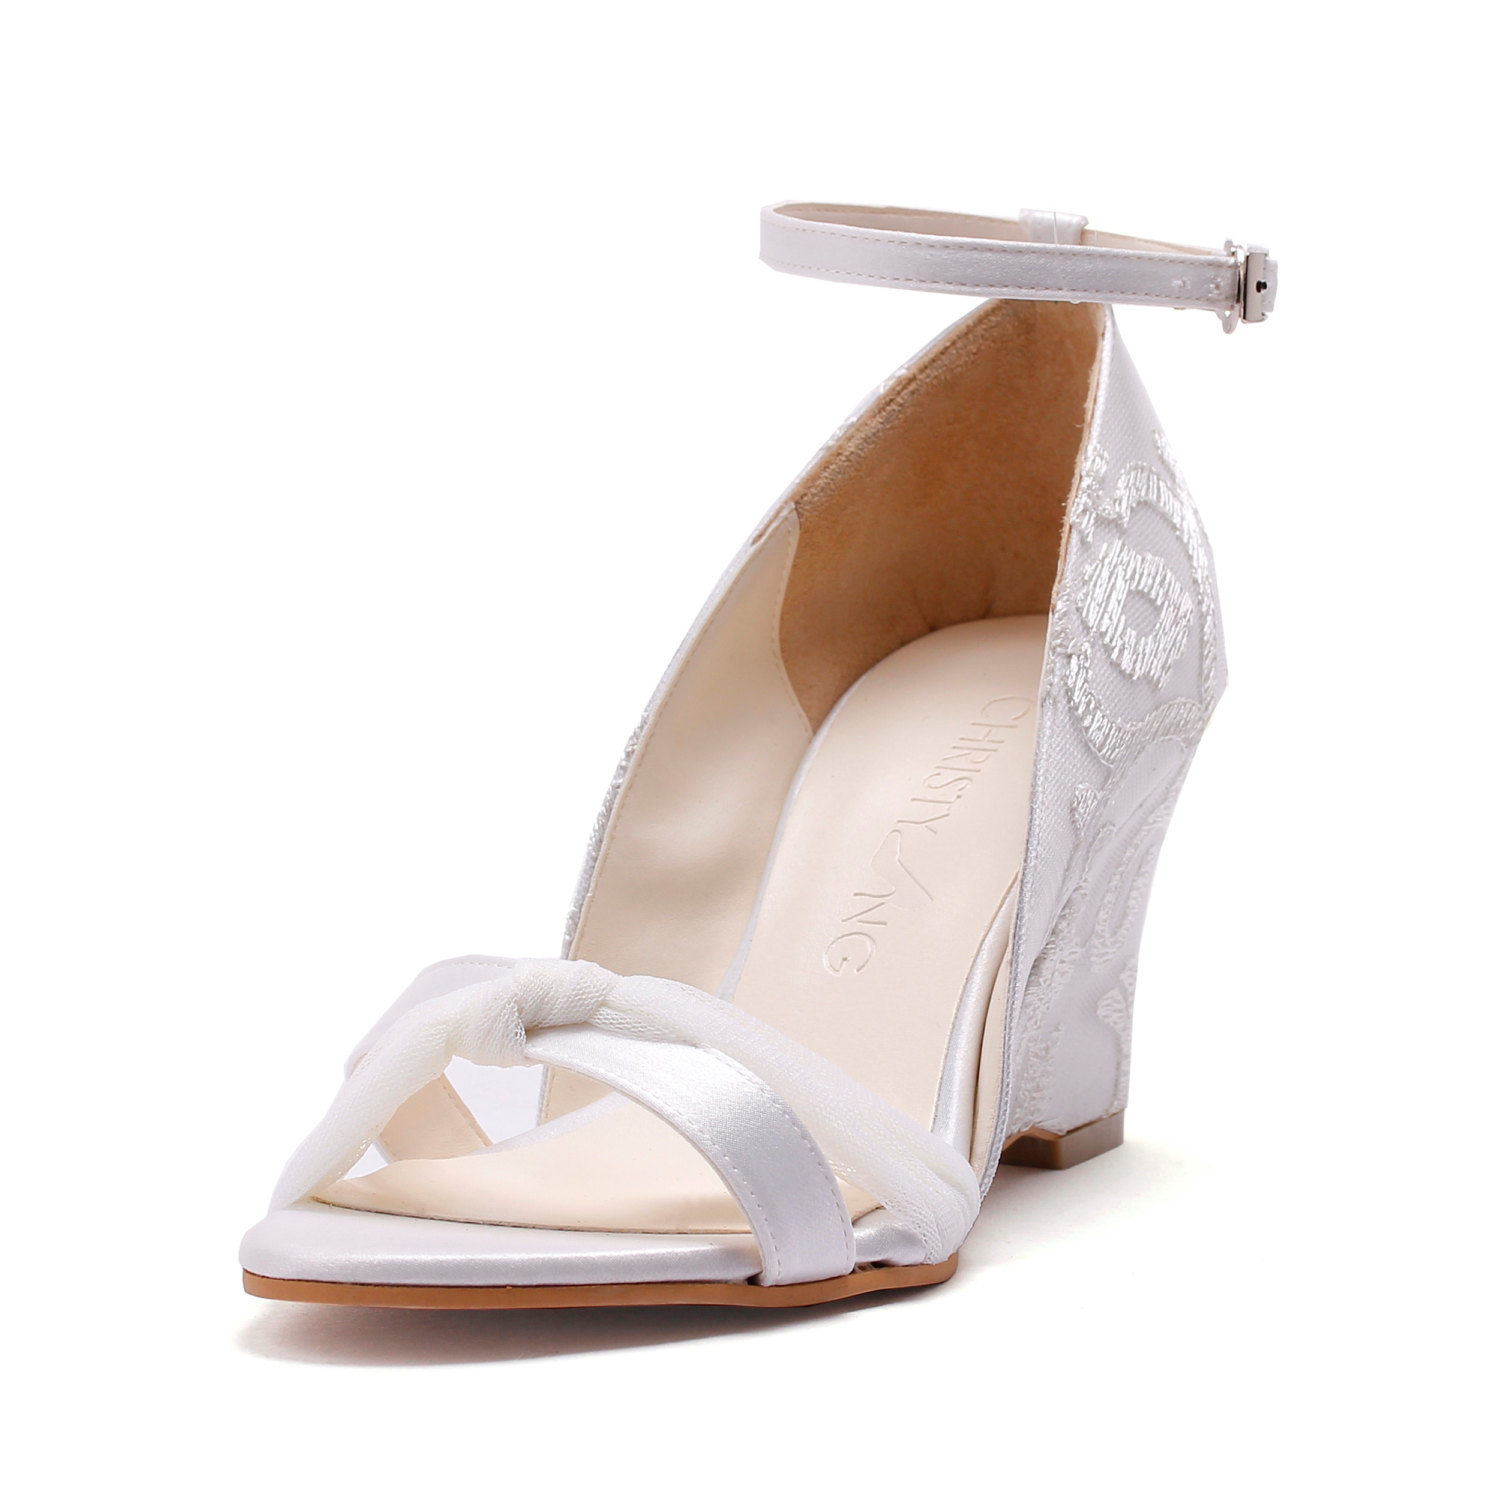 What Are The Benefits Of Wedding Shoes Wedges? - StyleSkier.com